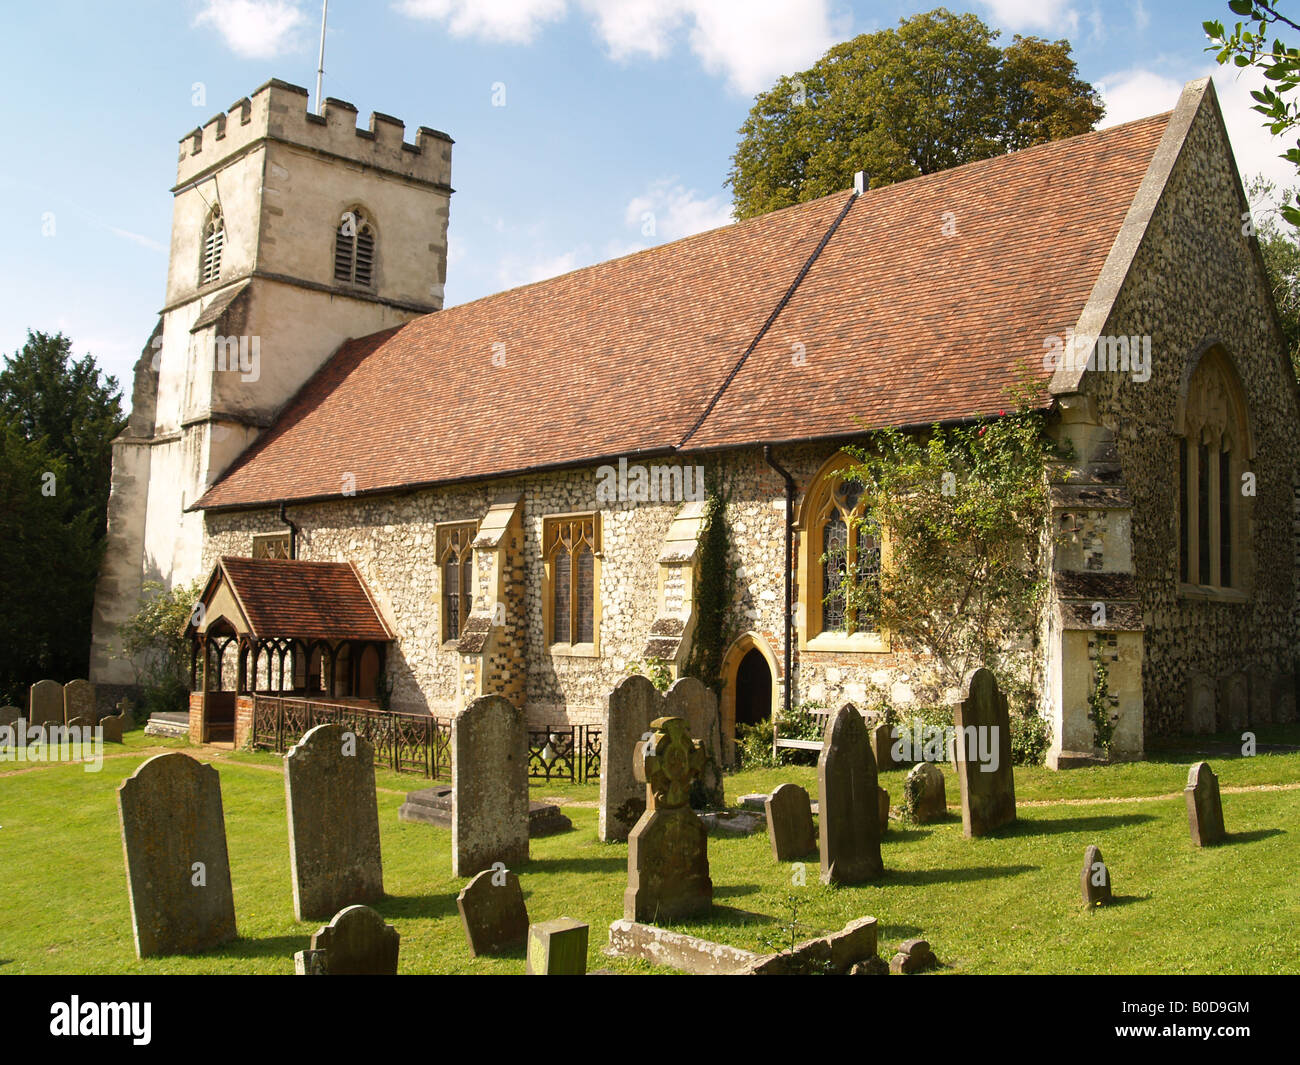 Church of St Peter and St Paul at Medmenham, Buckinghamshire Stock Photo